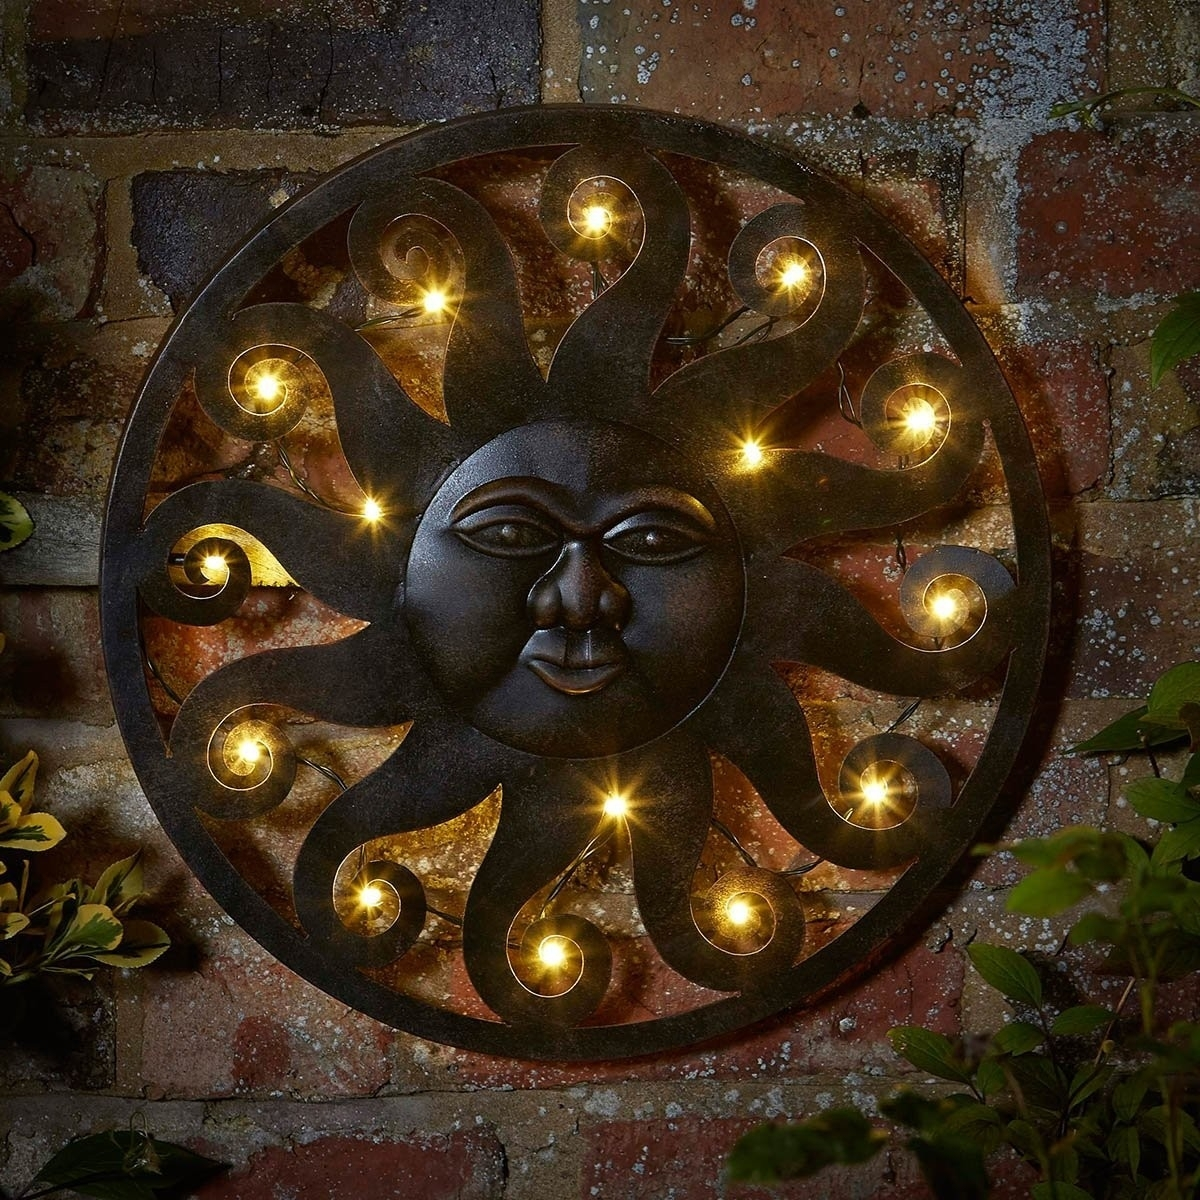 Large Outdoor Wall Art Metal Design Ideas Indoor Decor Nz Uk inside Large Outdoor Metal Wall Art (Image 11 of 20)